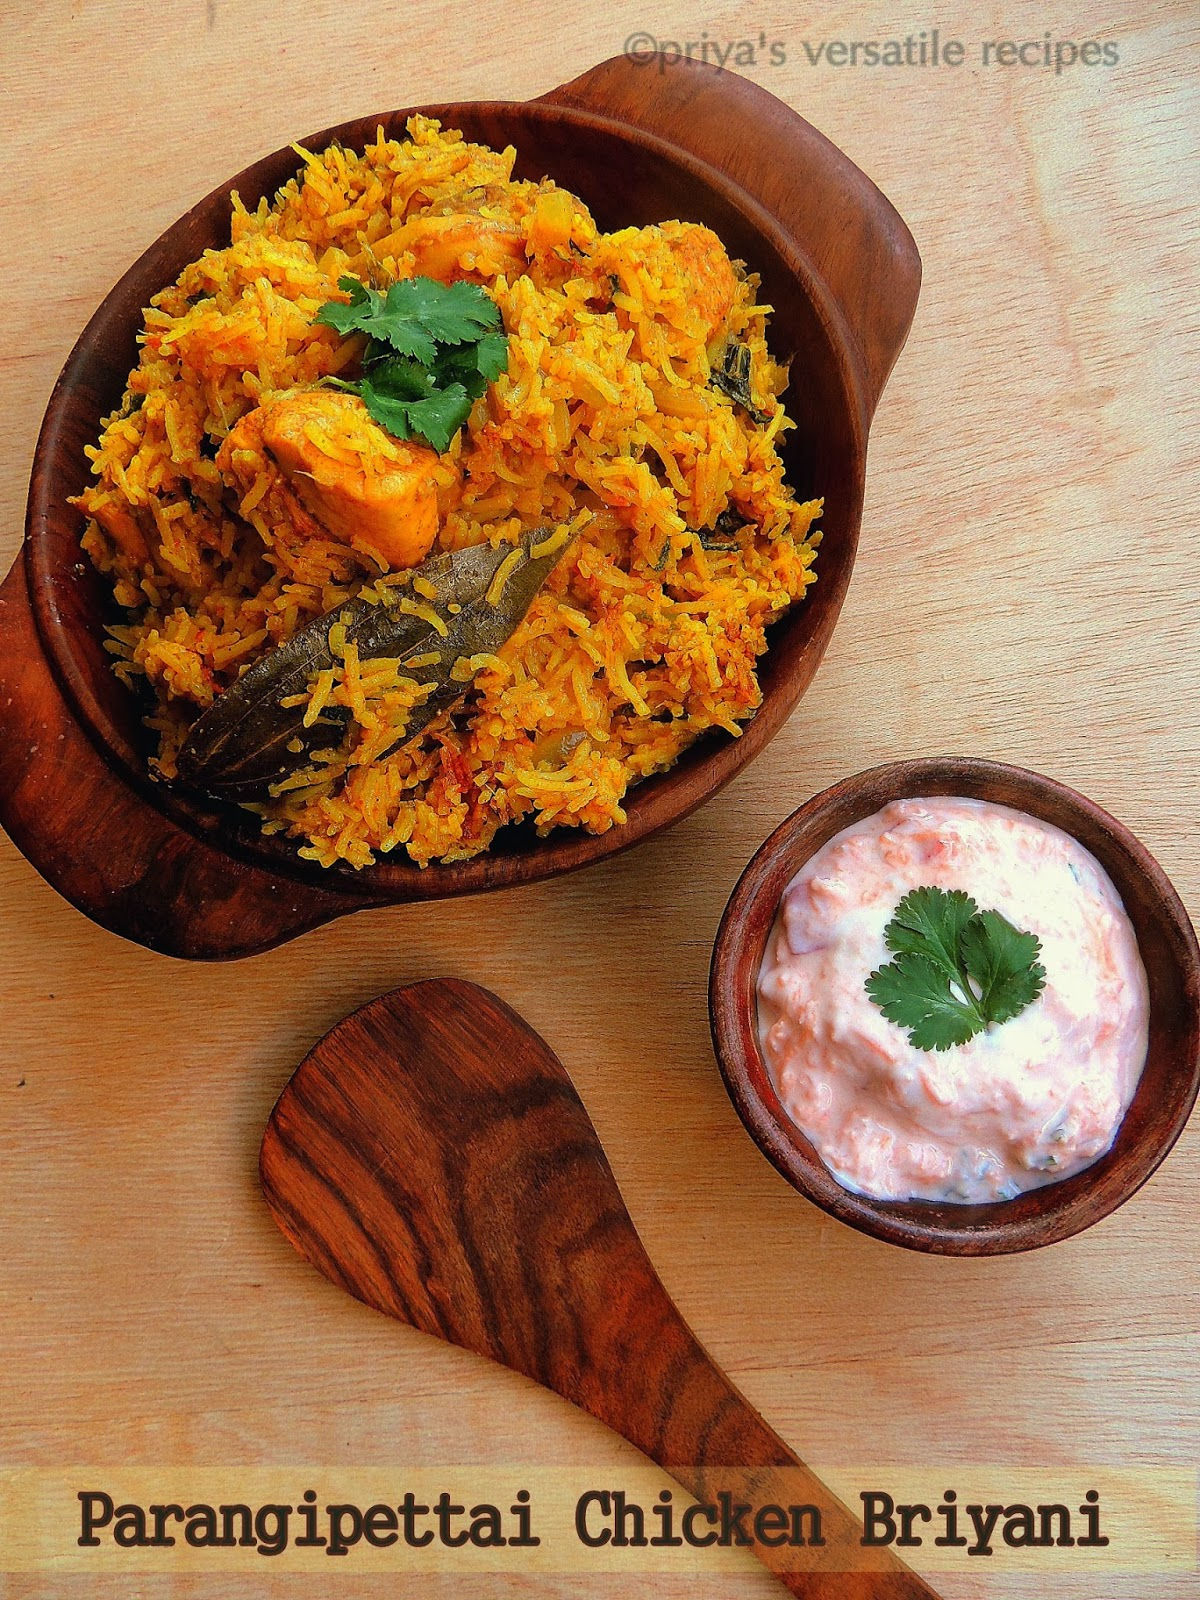 Priyas versatile recipes non veg recipes rice dishes forumfinder Images